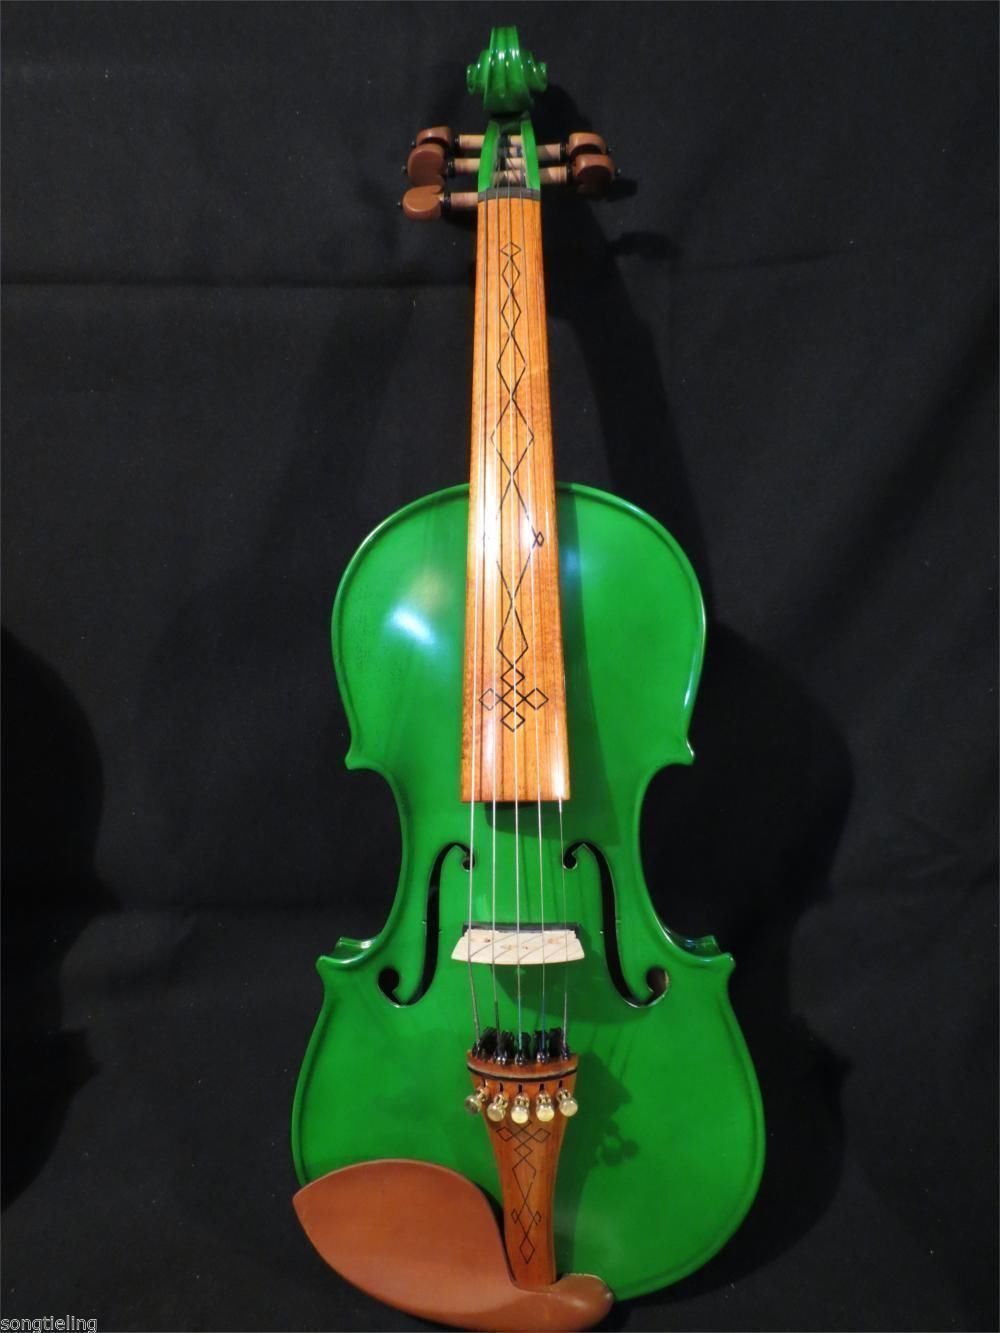 Handmade Top New Green Color Electric Violin 5 Strings 4/4 Electric Violin Acoustic Violino Great Sound new dji top